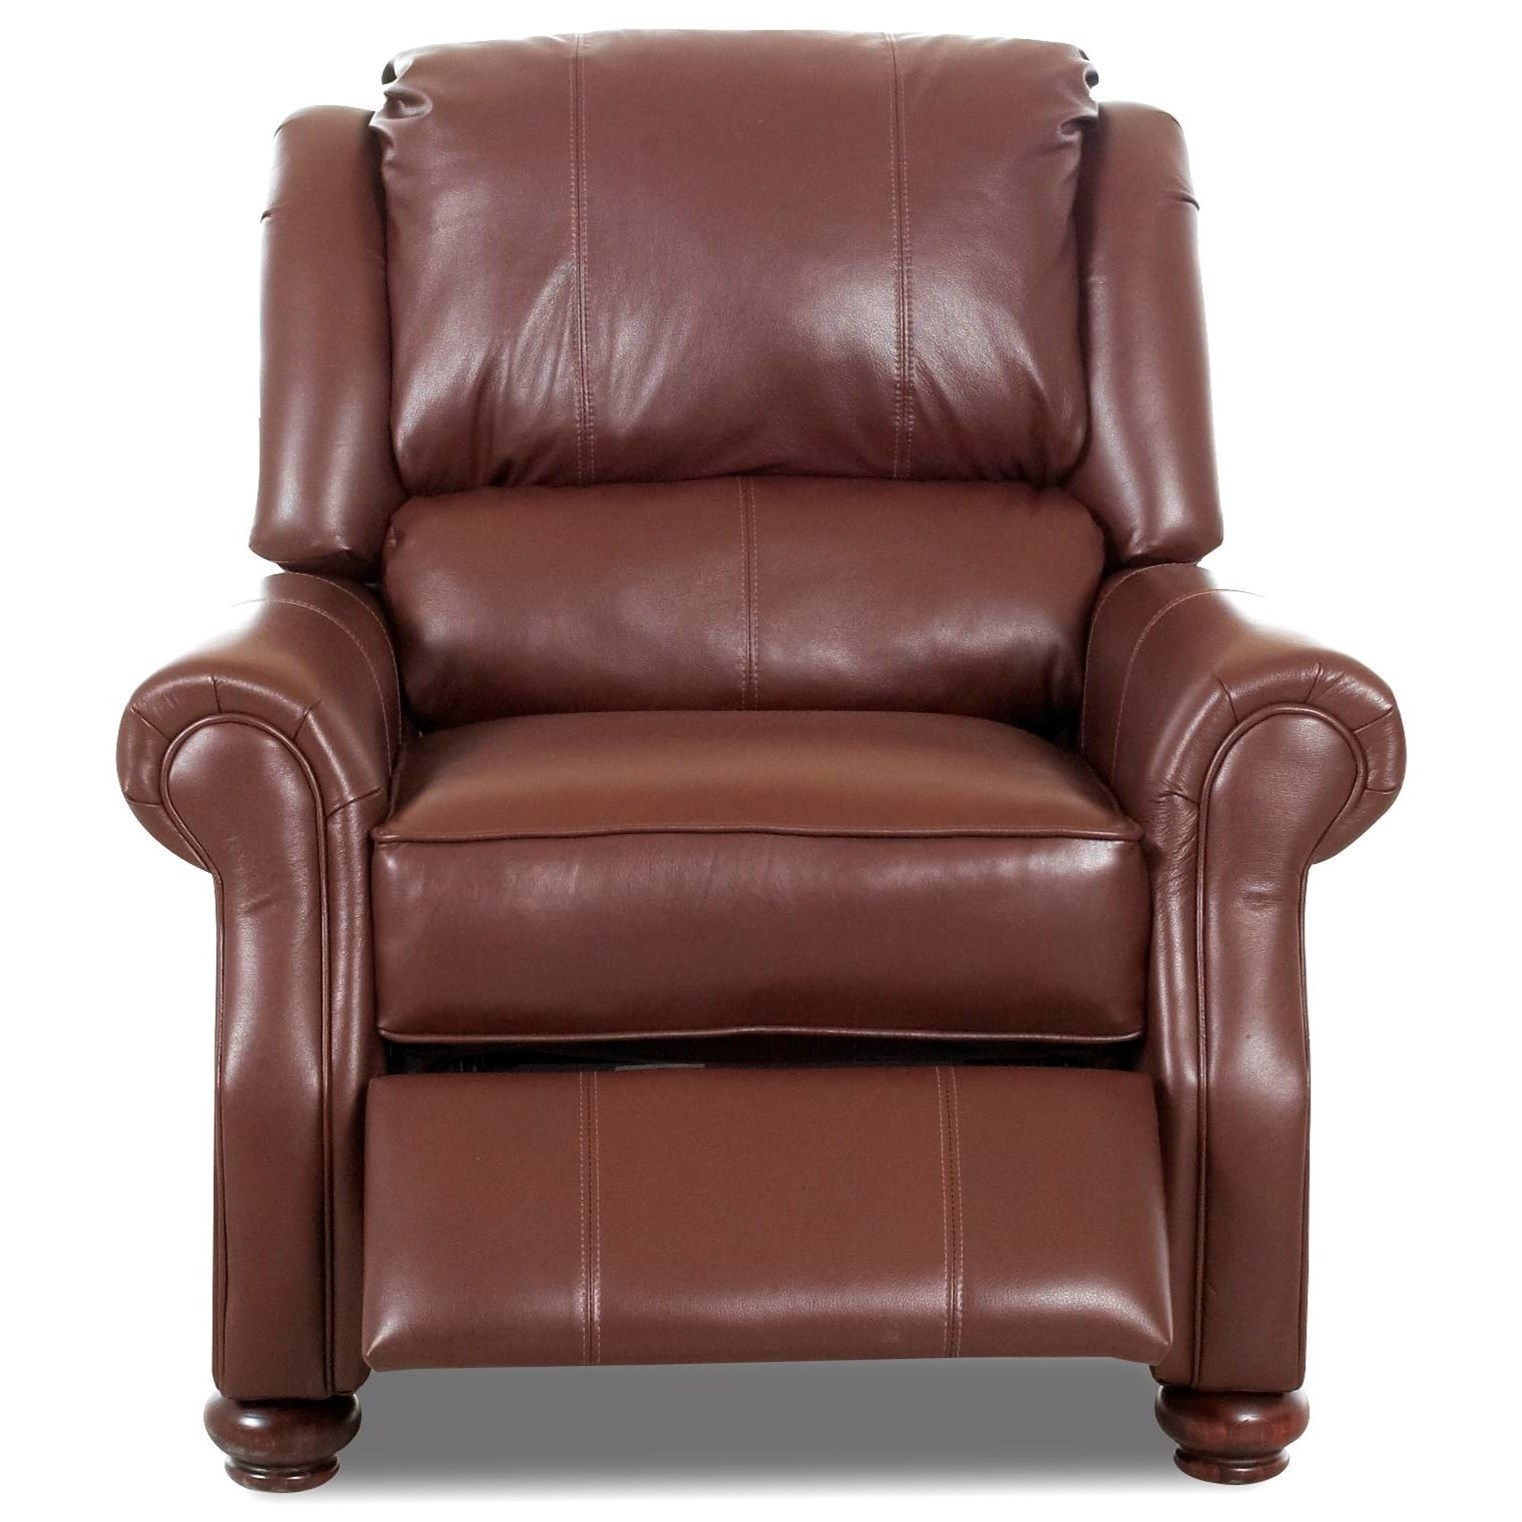 High Leg Recliners For Tall Men